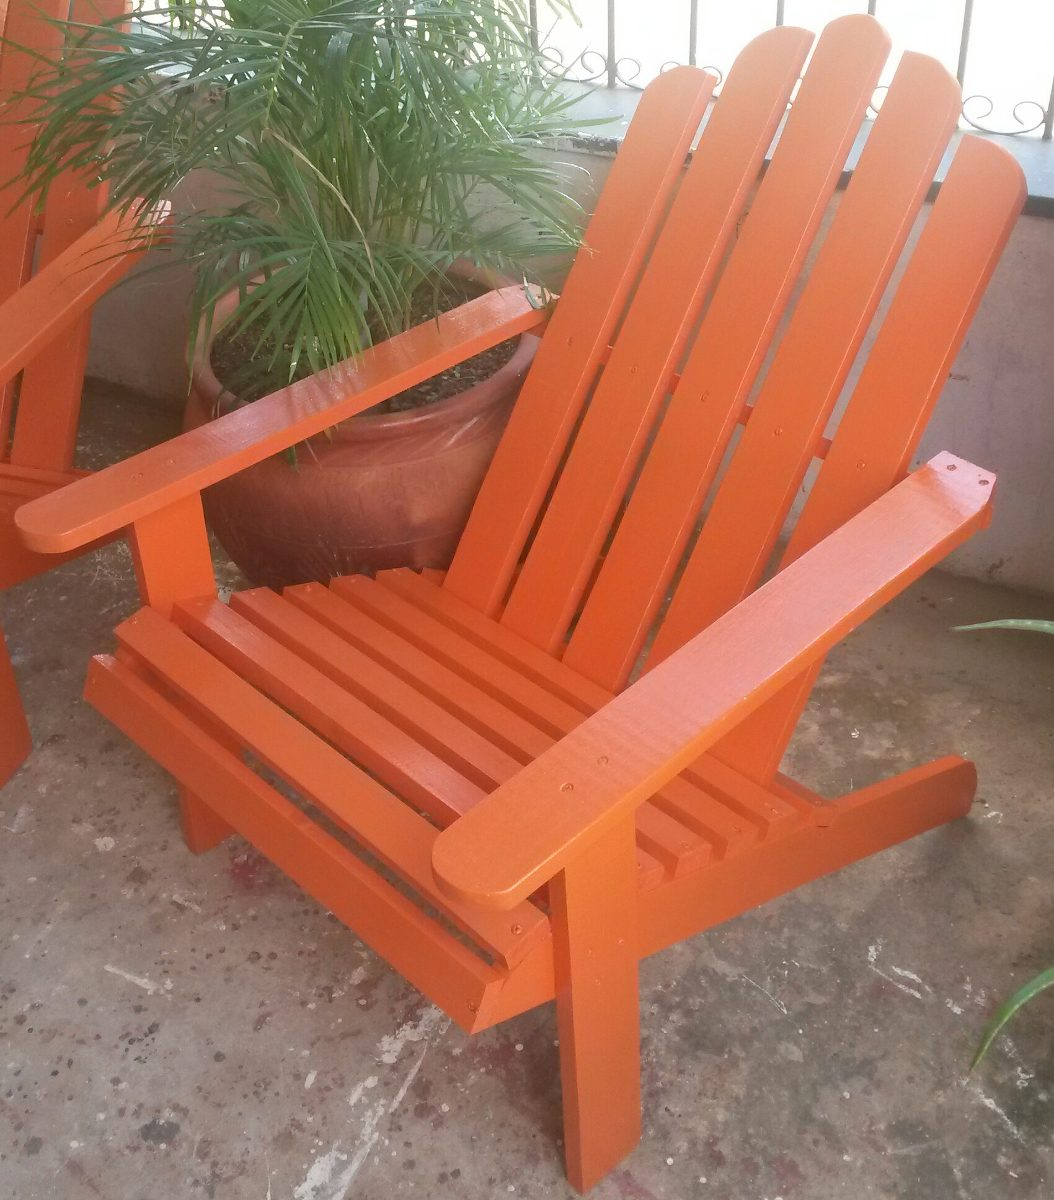 Muebles de paletas o sillas adirondack al natural o - Muebles al natural ...